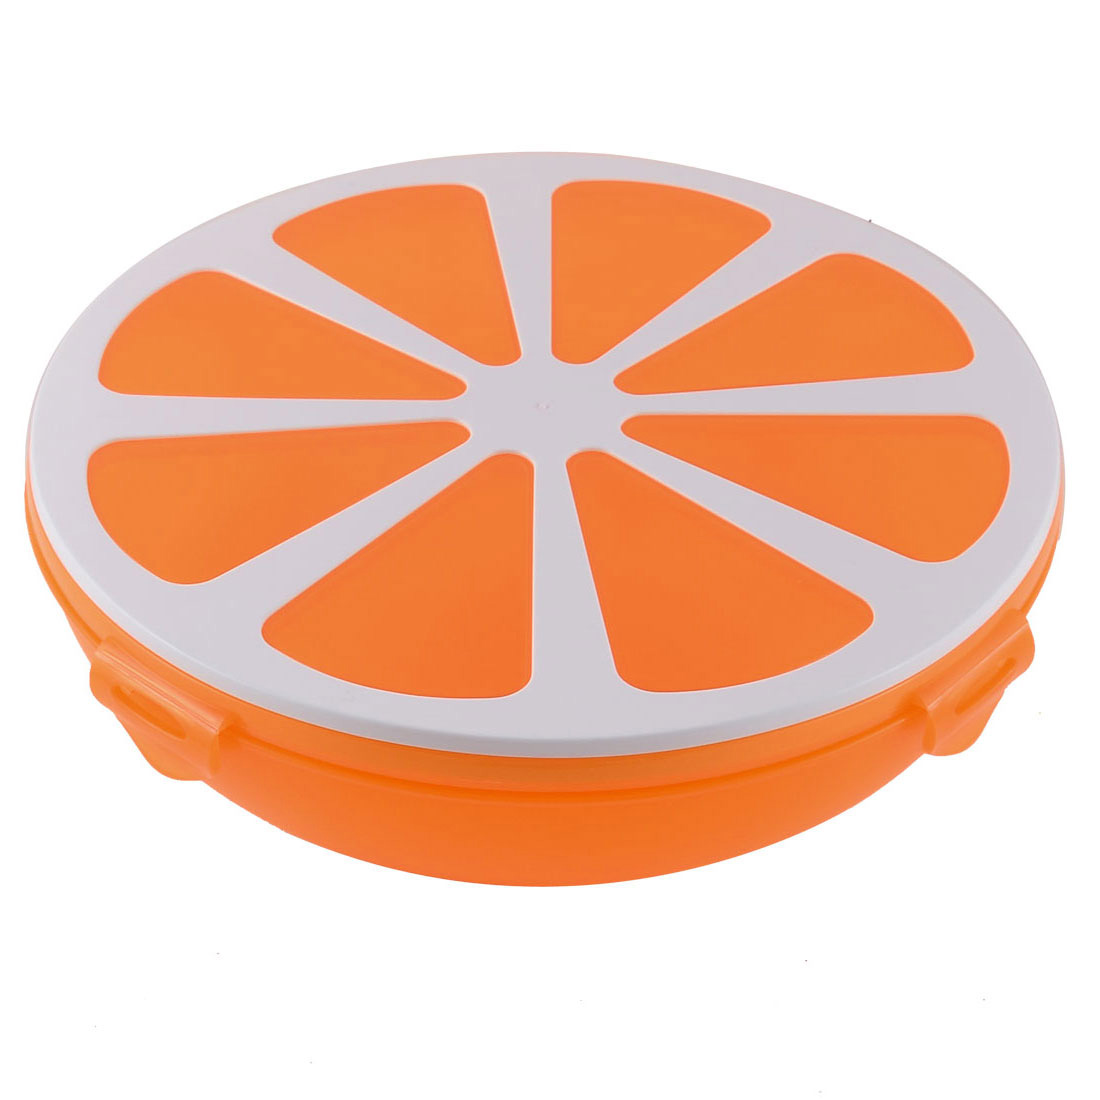 Wedding Party Plastic Sealed Candy Nut Dessert Snacks Box Storage Case Container Holder Orange